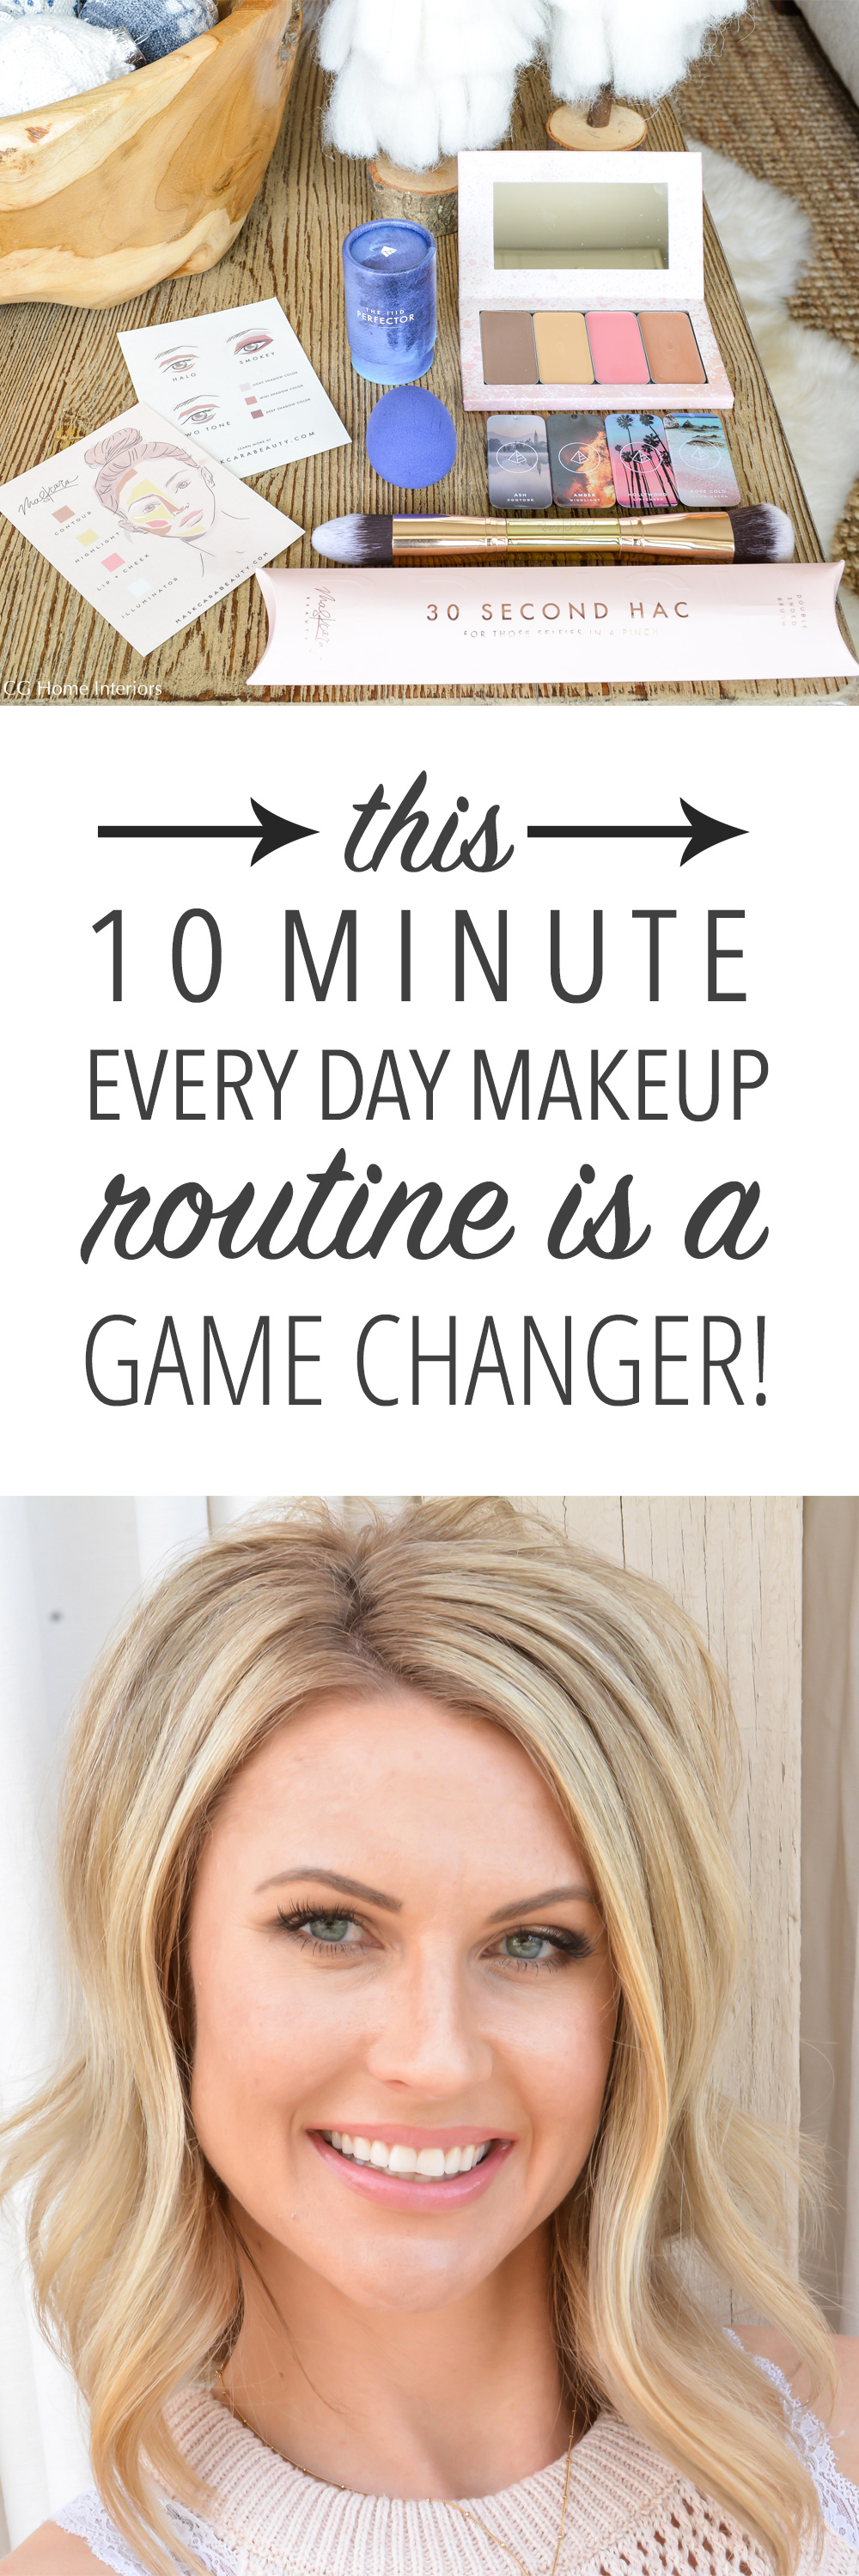 10 Minute Every Day Makeup Tutorial